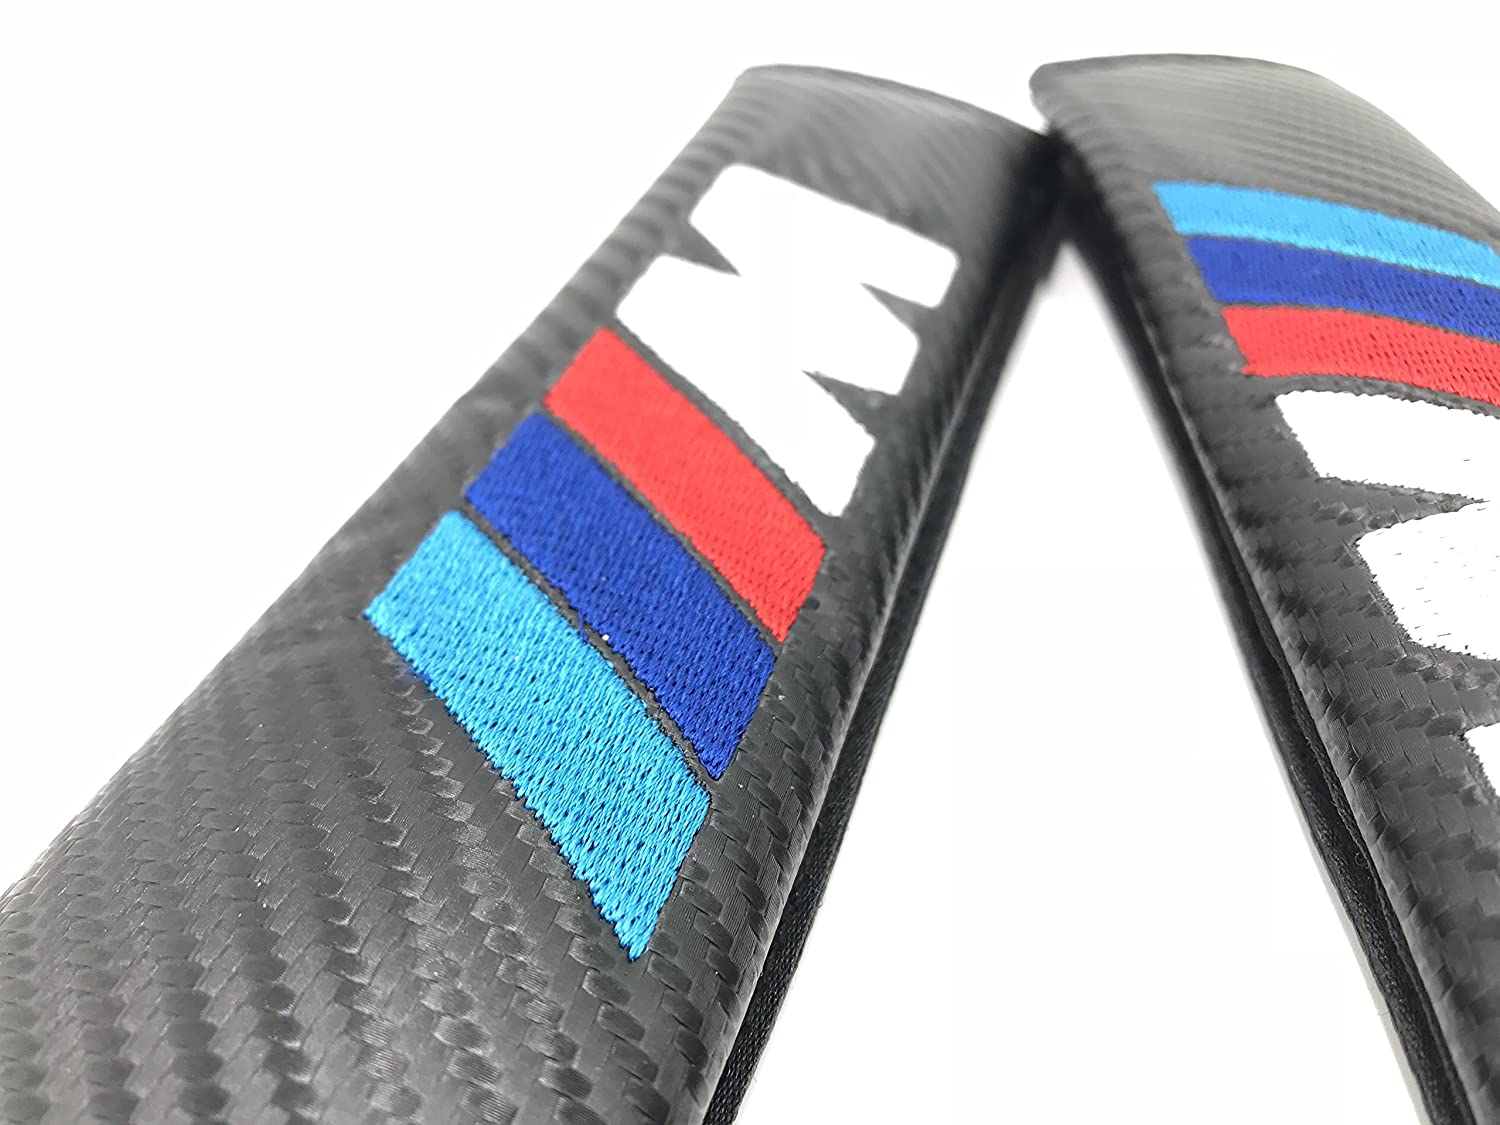 LLSW shop Car Automotive Advanced Carbon Fiber Seat Belt Pads Covers With Box and Gift Card (with M Logo) 1688 201704-07